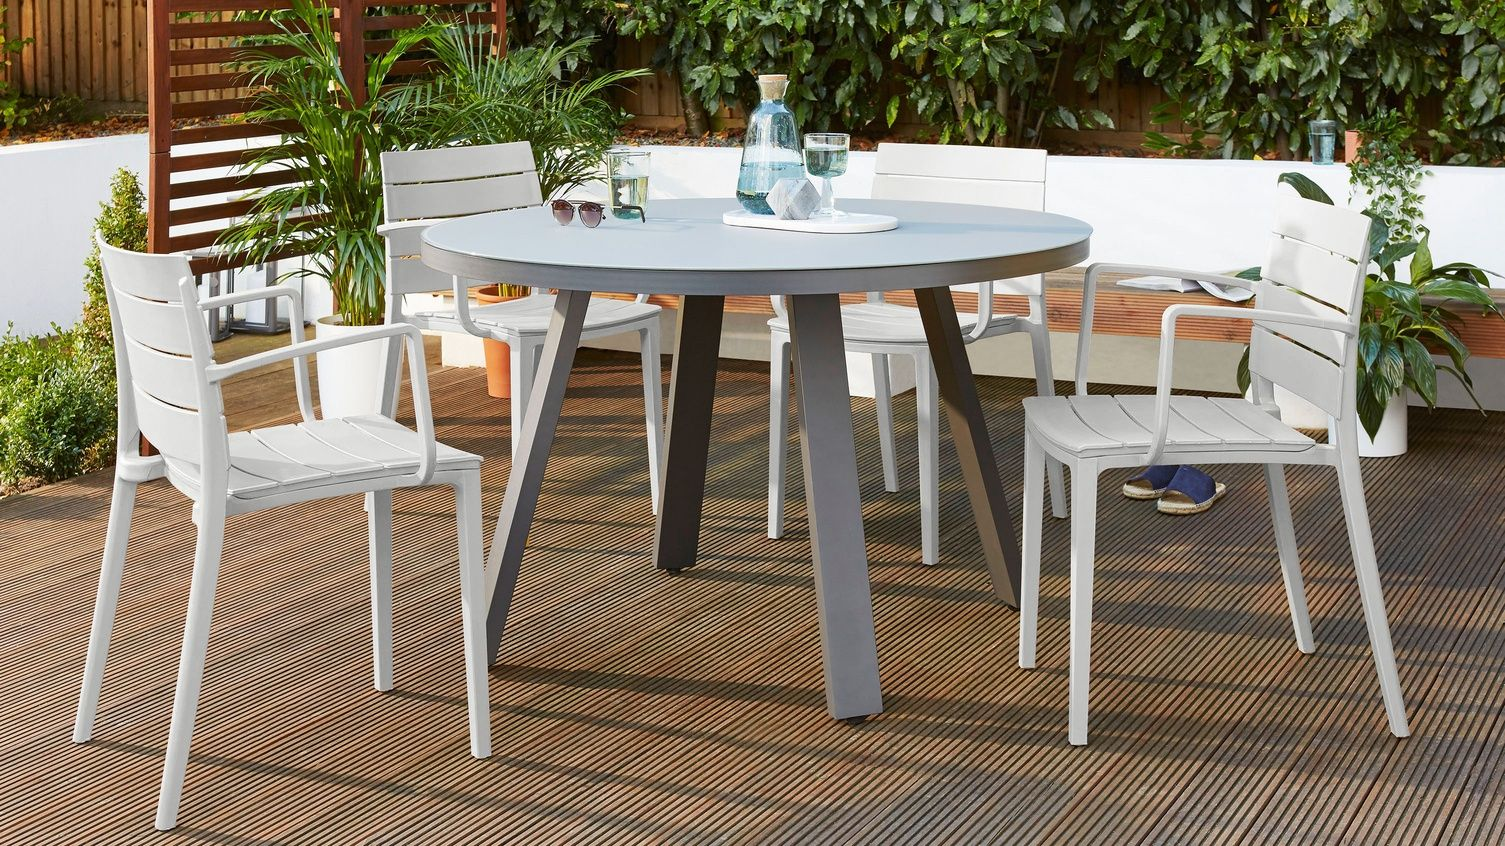 Z Dropped Koko Grey Round 4 Seater Garden Dining Table In 2020